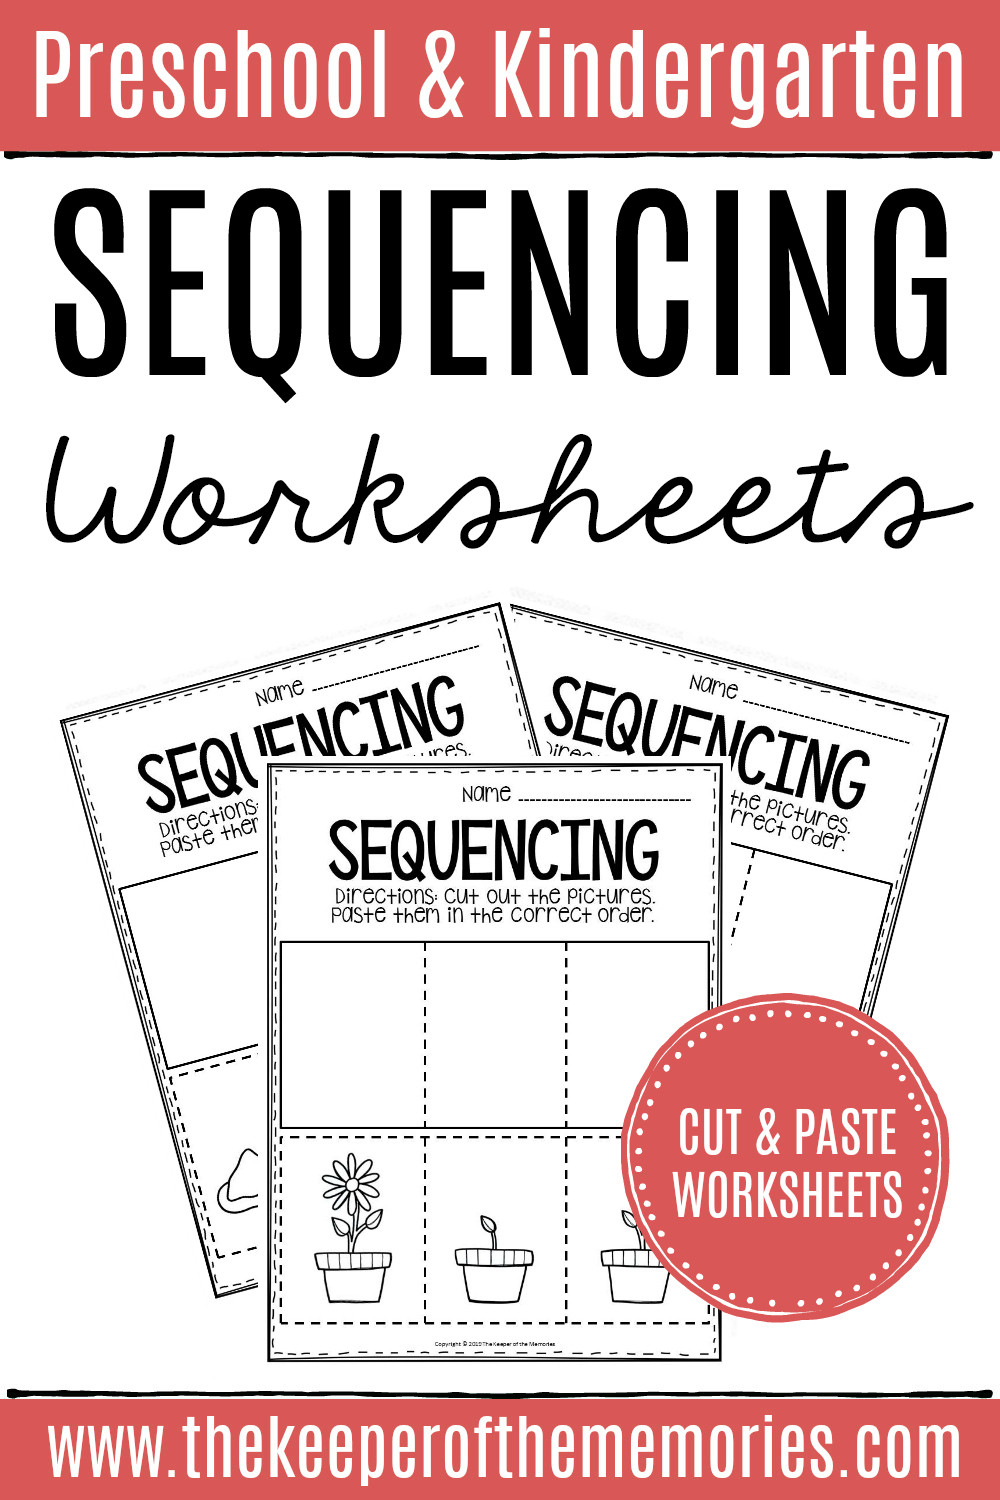 Free Printable Sequencing Worksheets 3 Step Sequencing Worksheets the Keeper Of the Memories